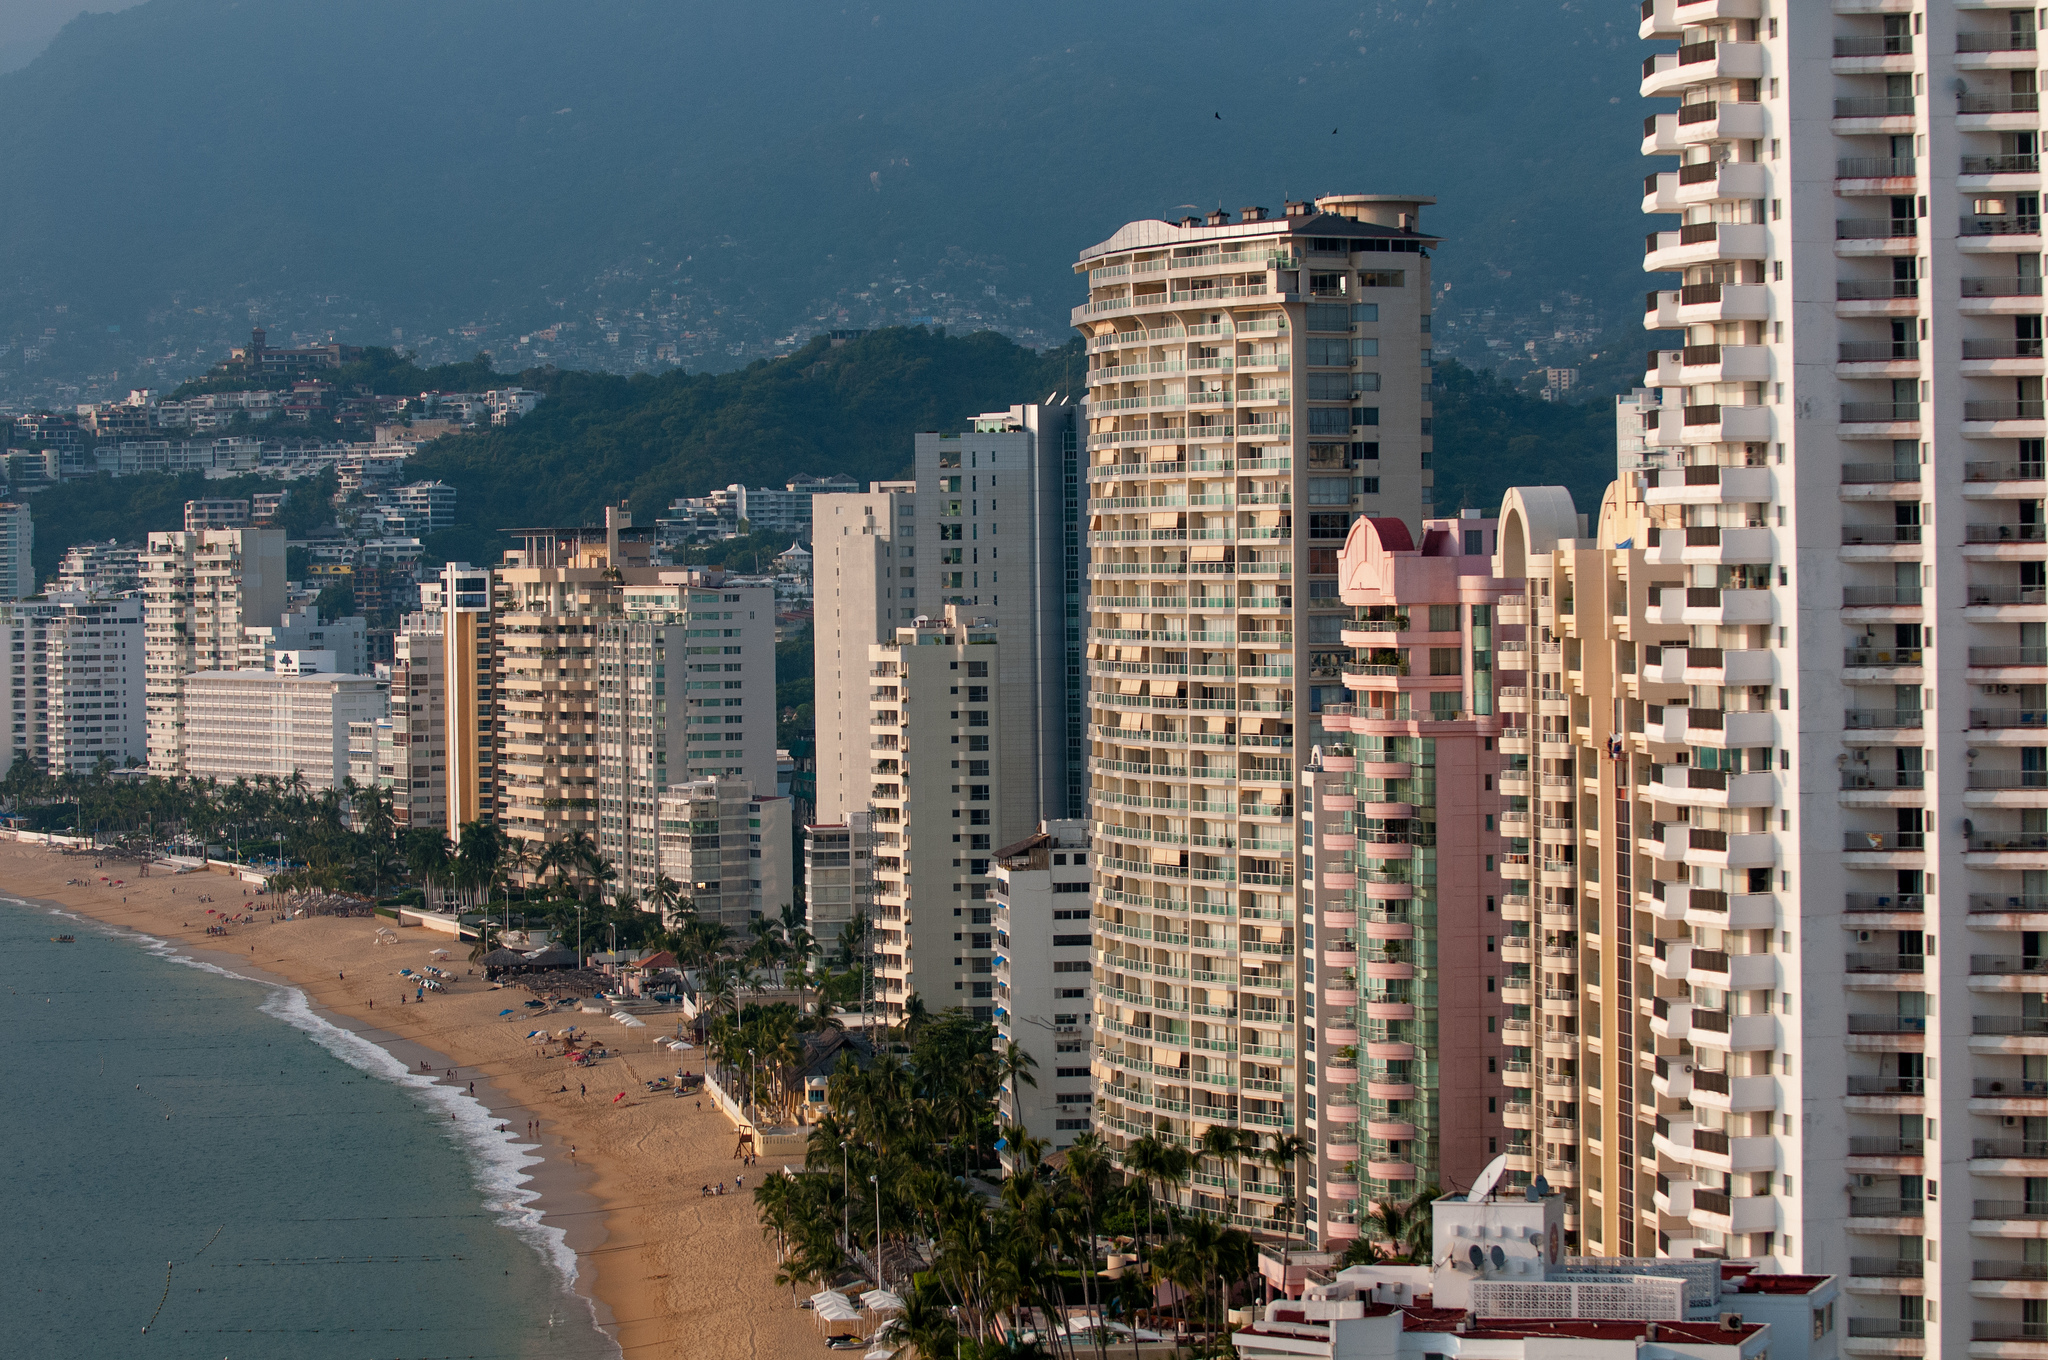 Dry season is the best time to visit Acapulco ...  Credit: Acapulco by CC user eneas on Flickr